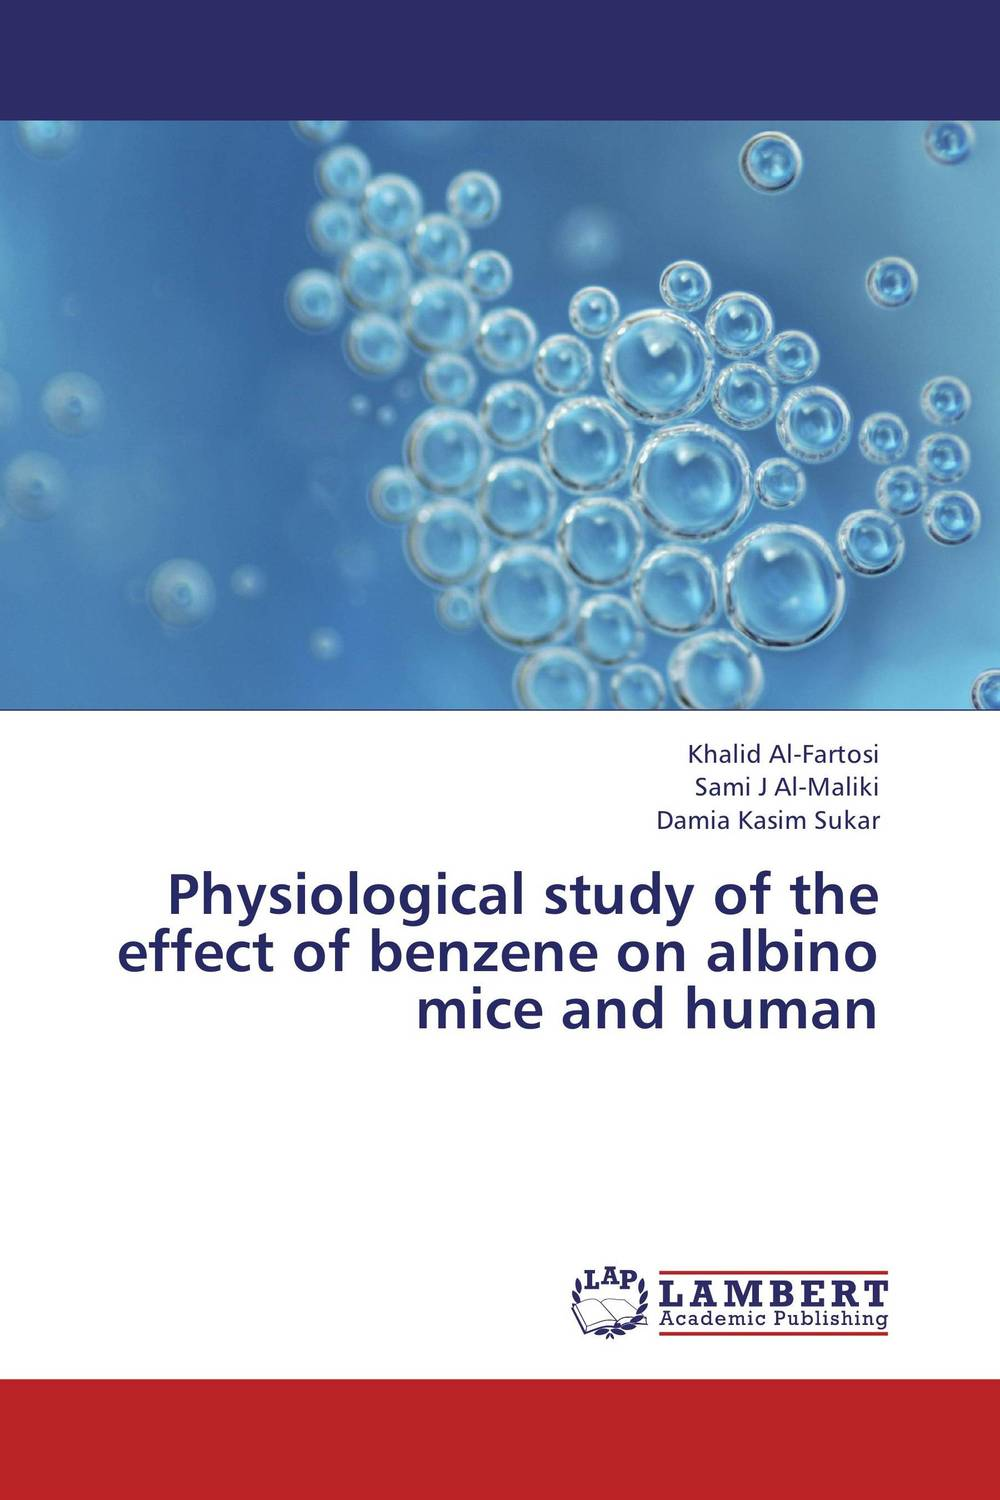 Physiological study of the effect of benzene on albino mice and human effect of curcuma longa on ovary of endosulfan exposed mice